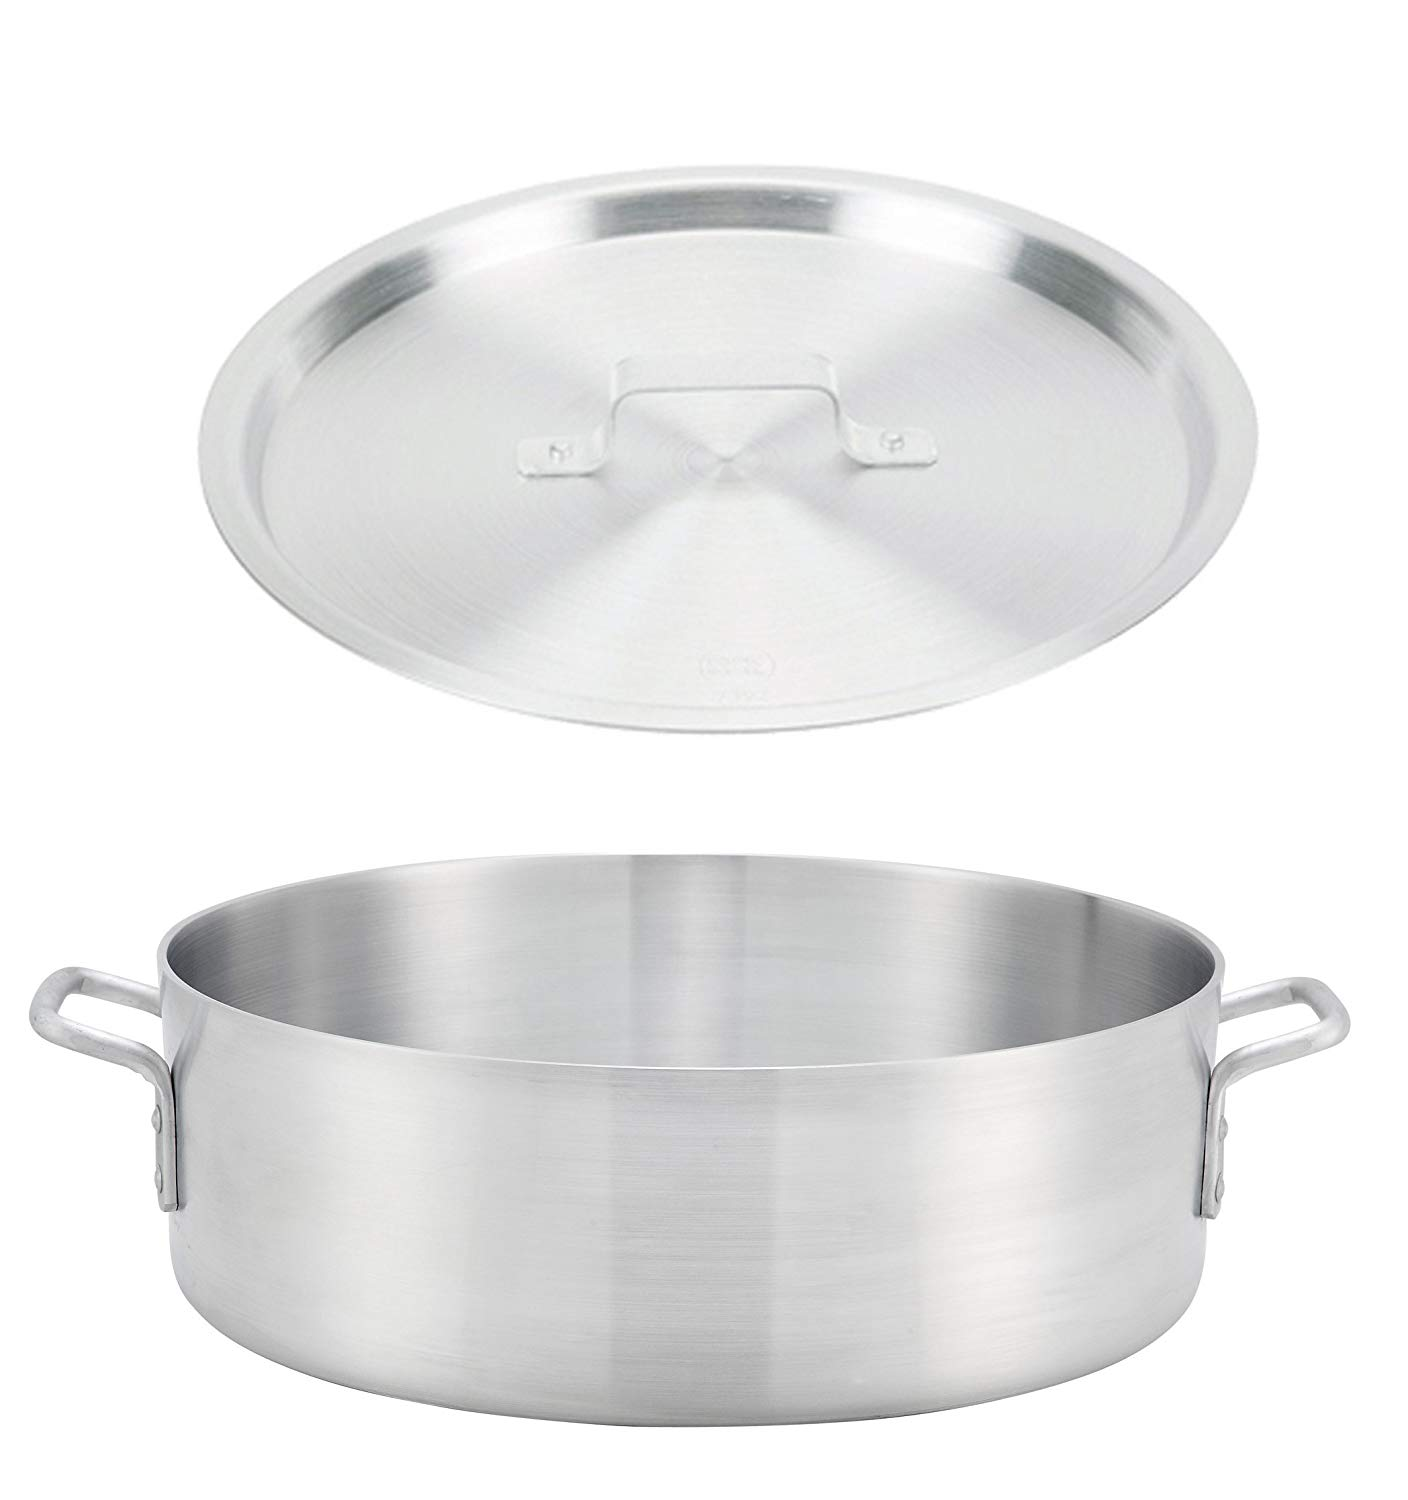 """Winco ALB-18, 18-Quart 15.8"""" x 5.5"""" Standard Heavy Aluminum Brazier Pan with Cover, Heavy-Duty Commercial Grade Braiser Pan with Lid, NSF"""